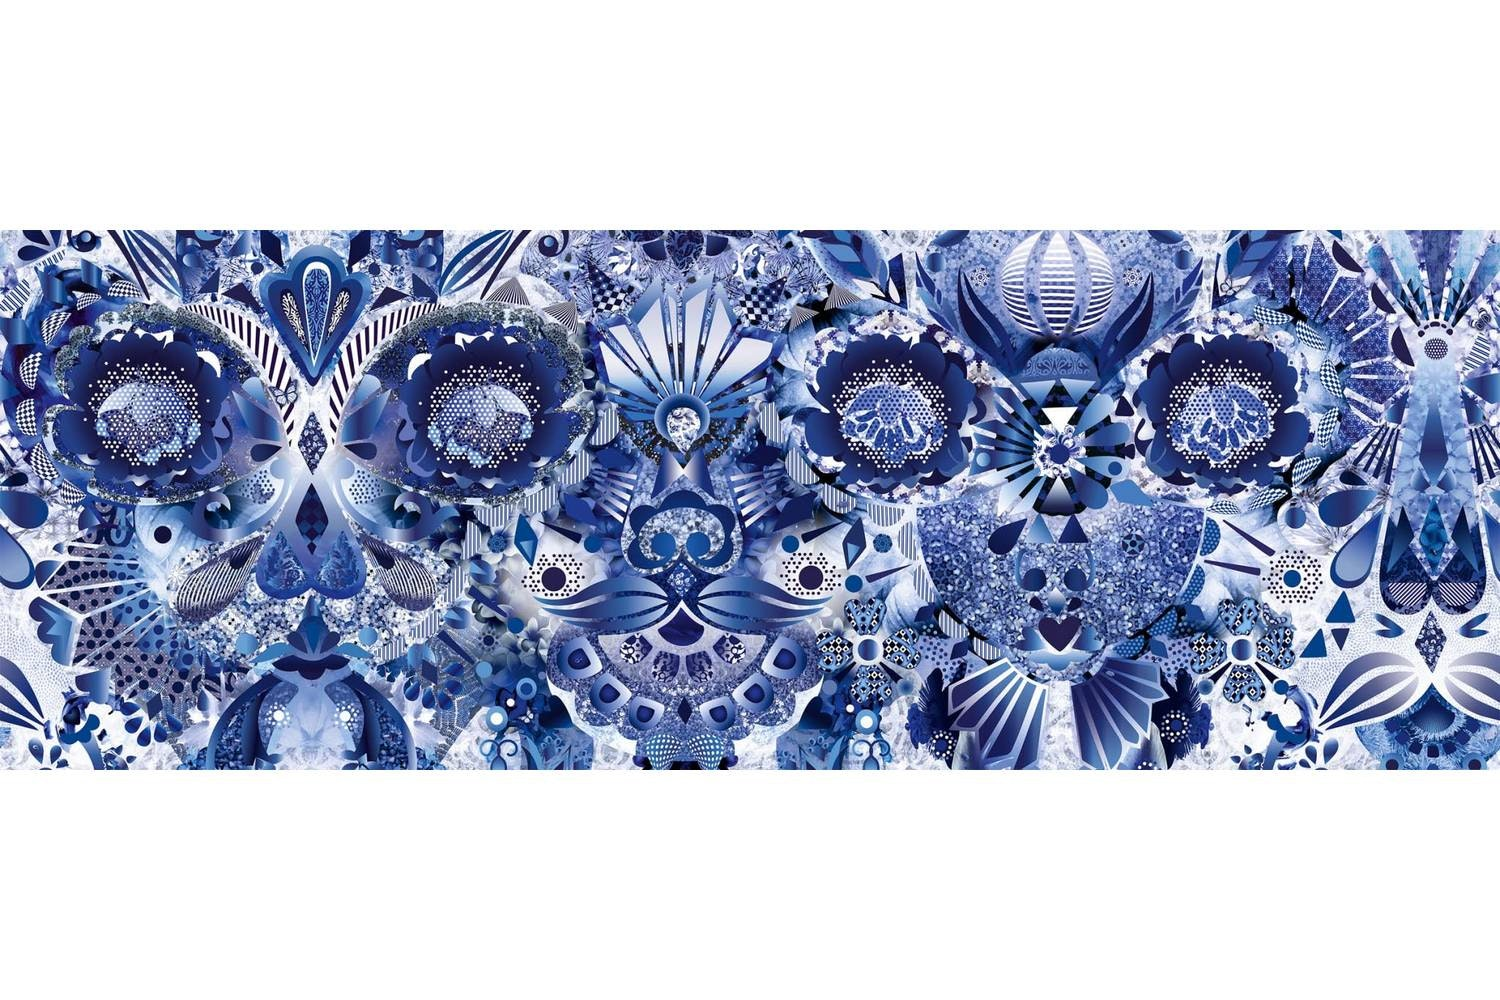 Delft Blue Broadloom Carpet by Marcel Wanders for Moooi Carpets